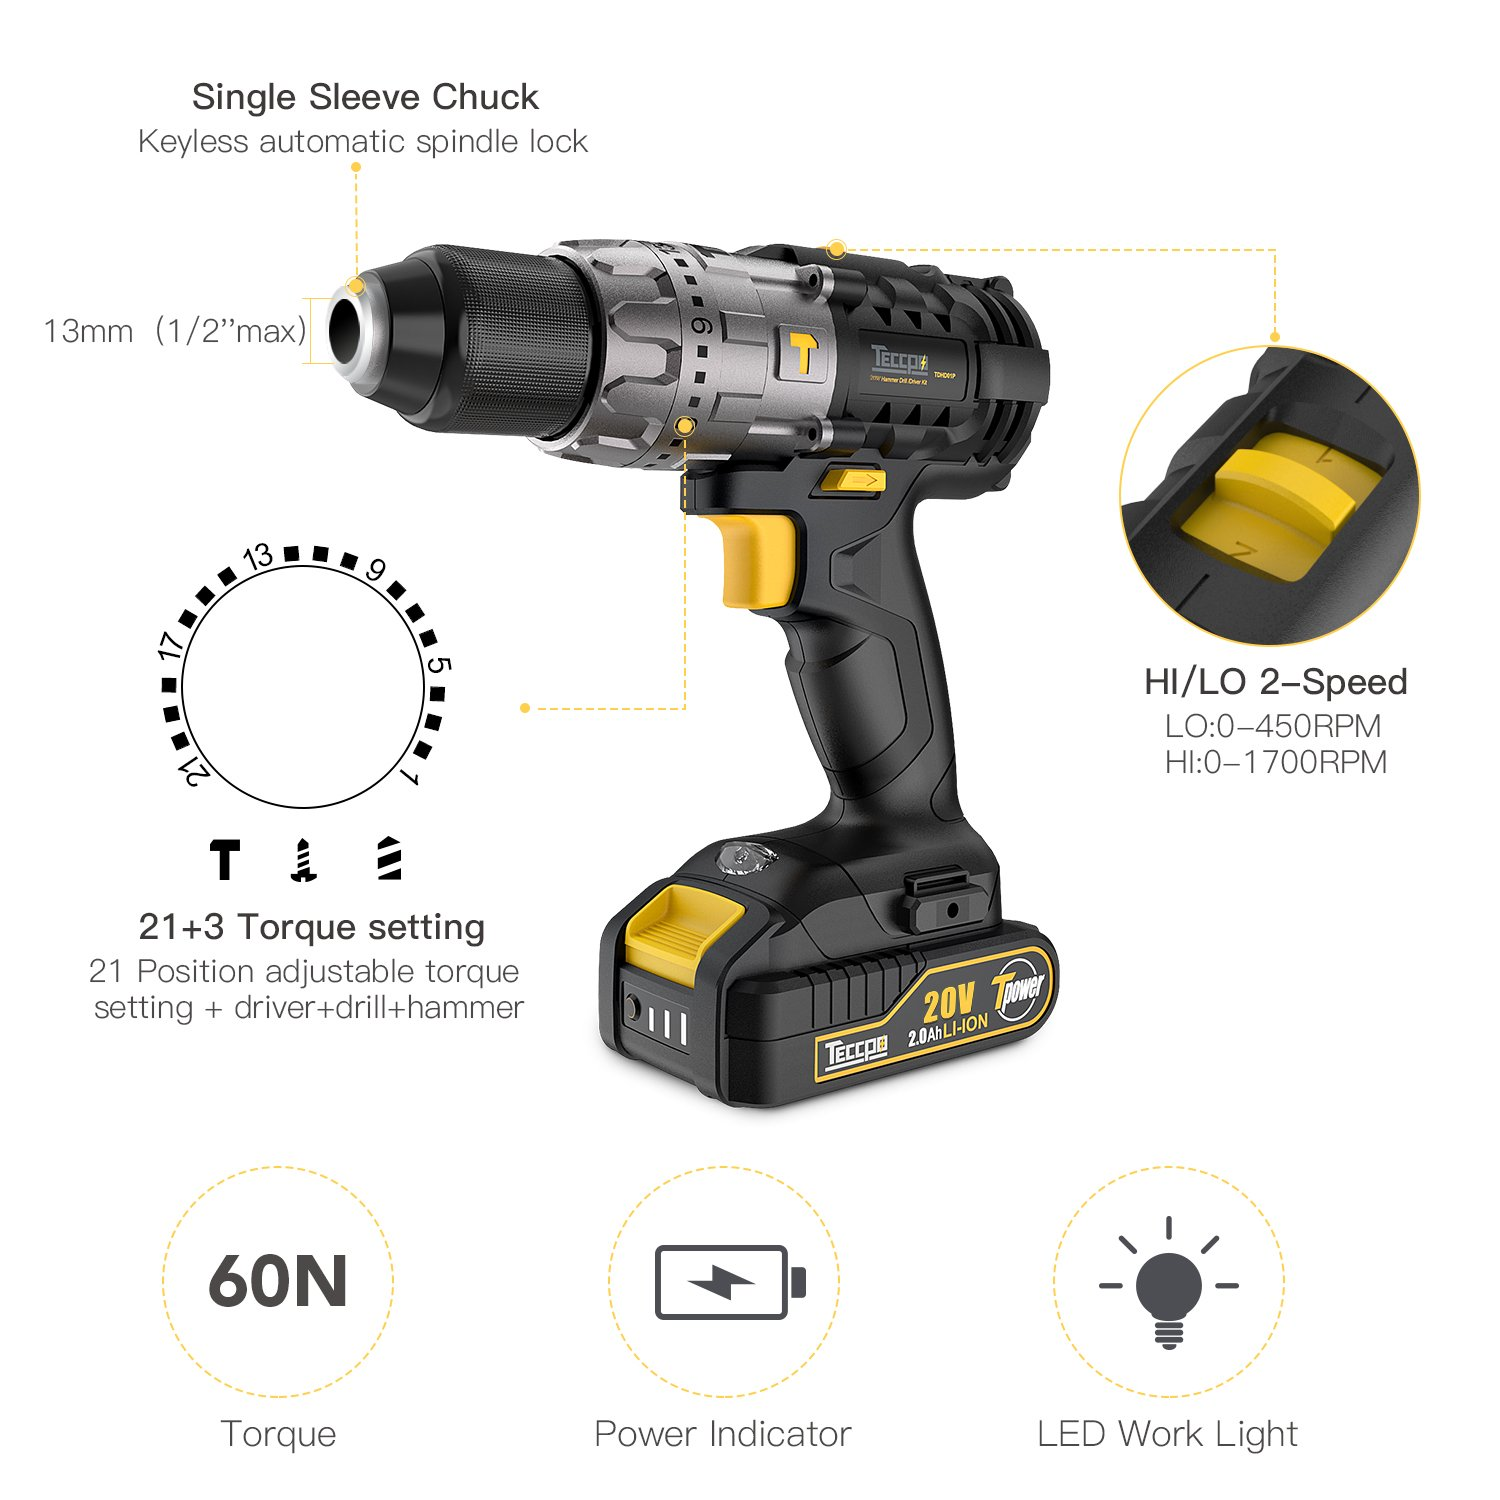 Cordless 20v Max Drill Driver Impact Combo Kit With 2pcs Circuit Scribe Conductive Ink Basic Electroninks Cskitbasic Professional 20ah Lithium